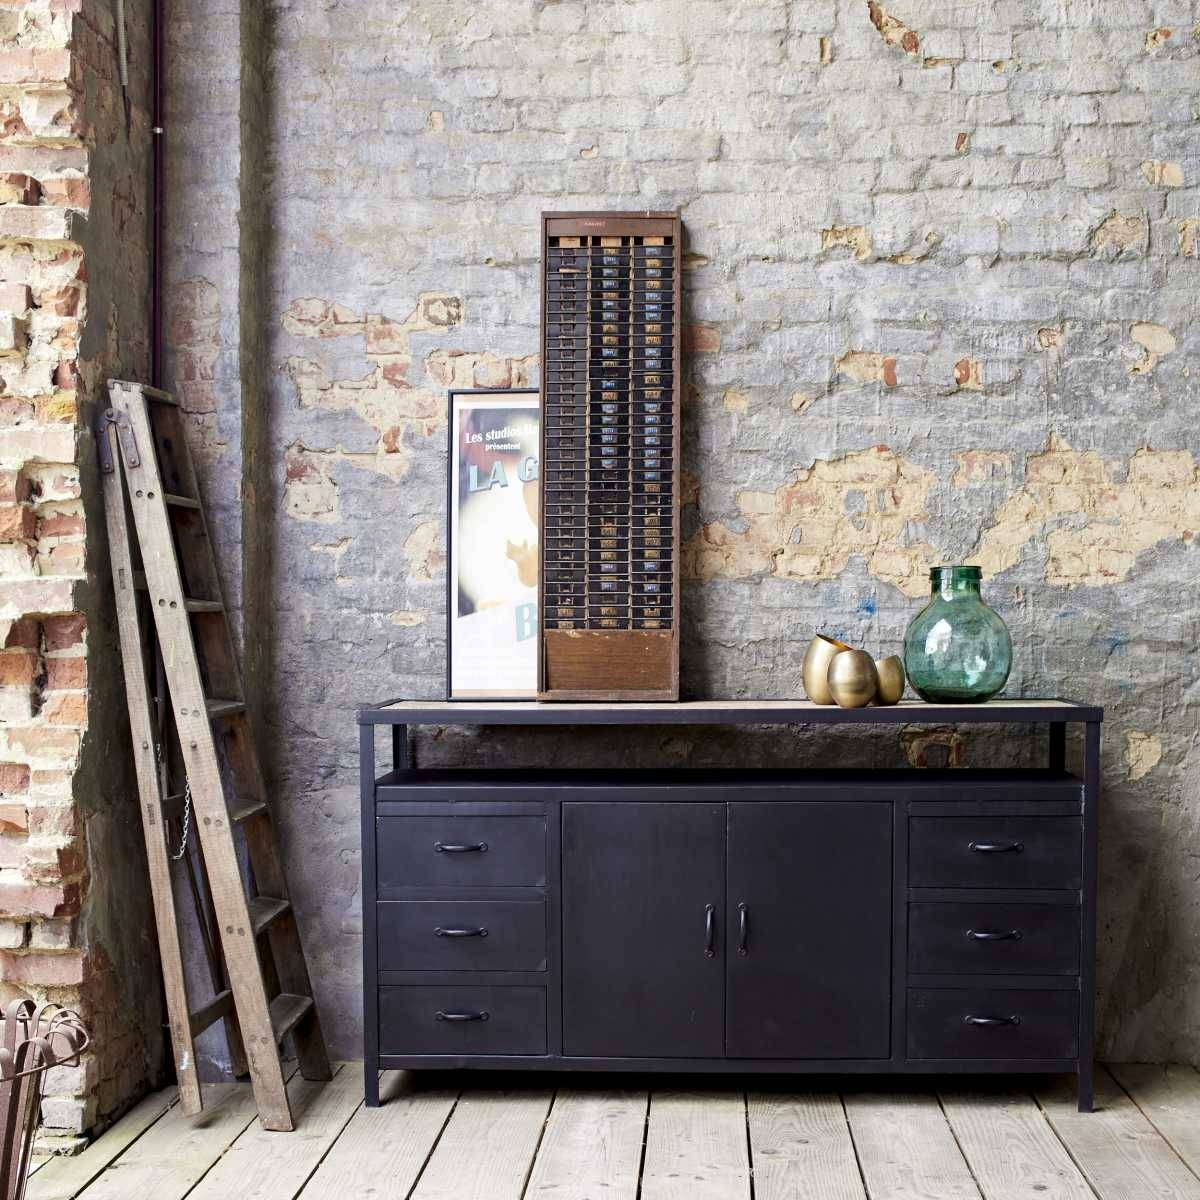 Industrial Style Metal Sideboards And Metallic Sideboards - Tikamoon throughout Metal Sideboards (Image 17 of 30)